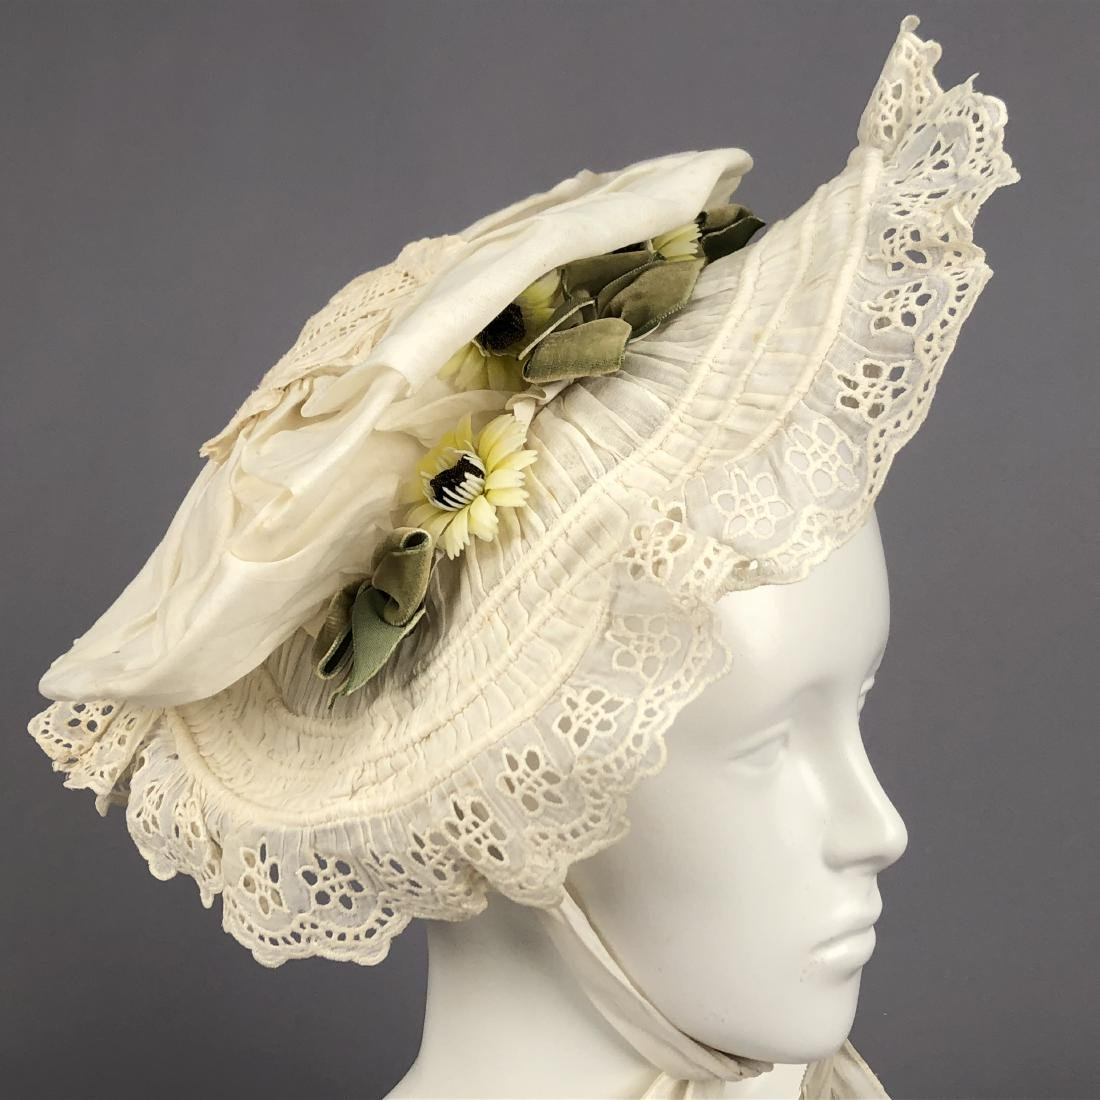 TAN STRAW LADY'S BONNET and GIRL'S HAT, 1850 - 1855 - 5